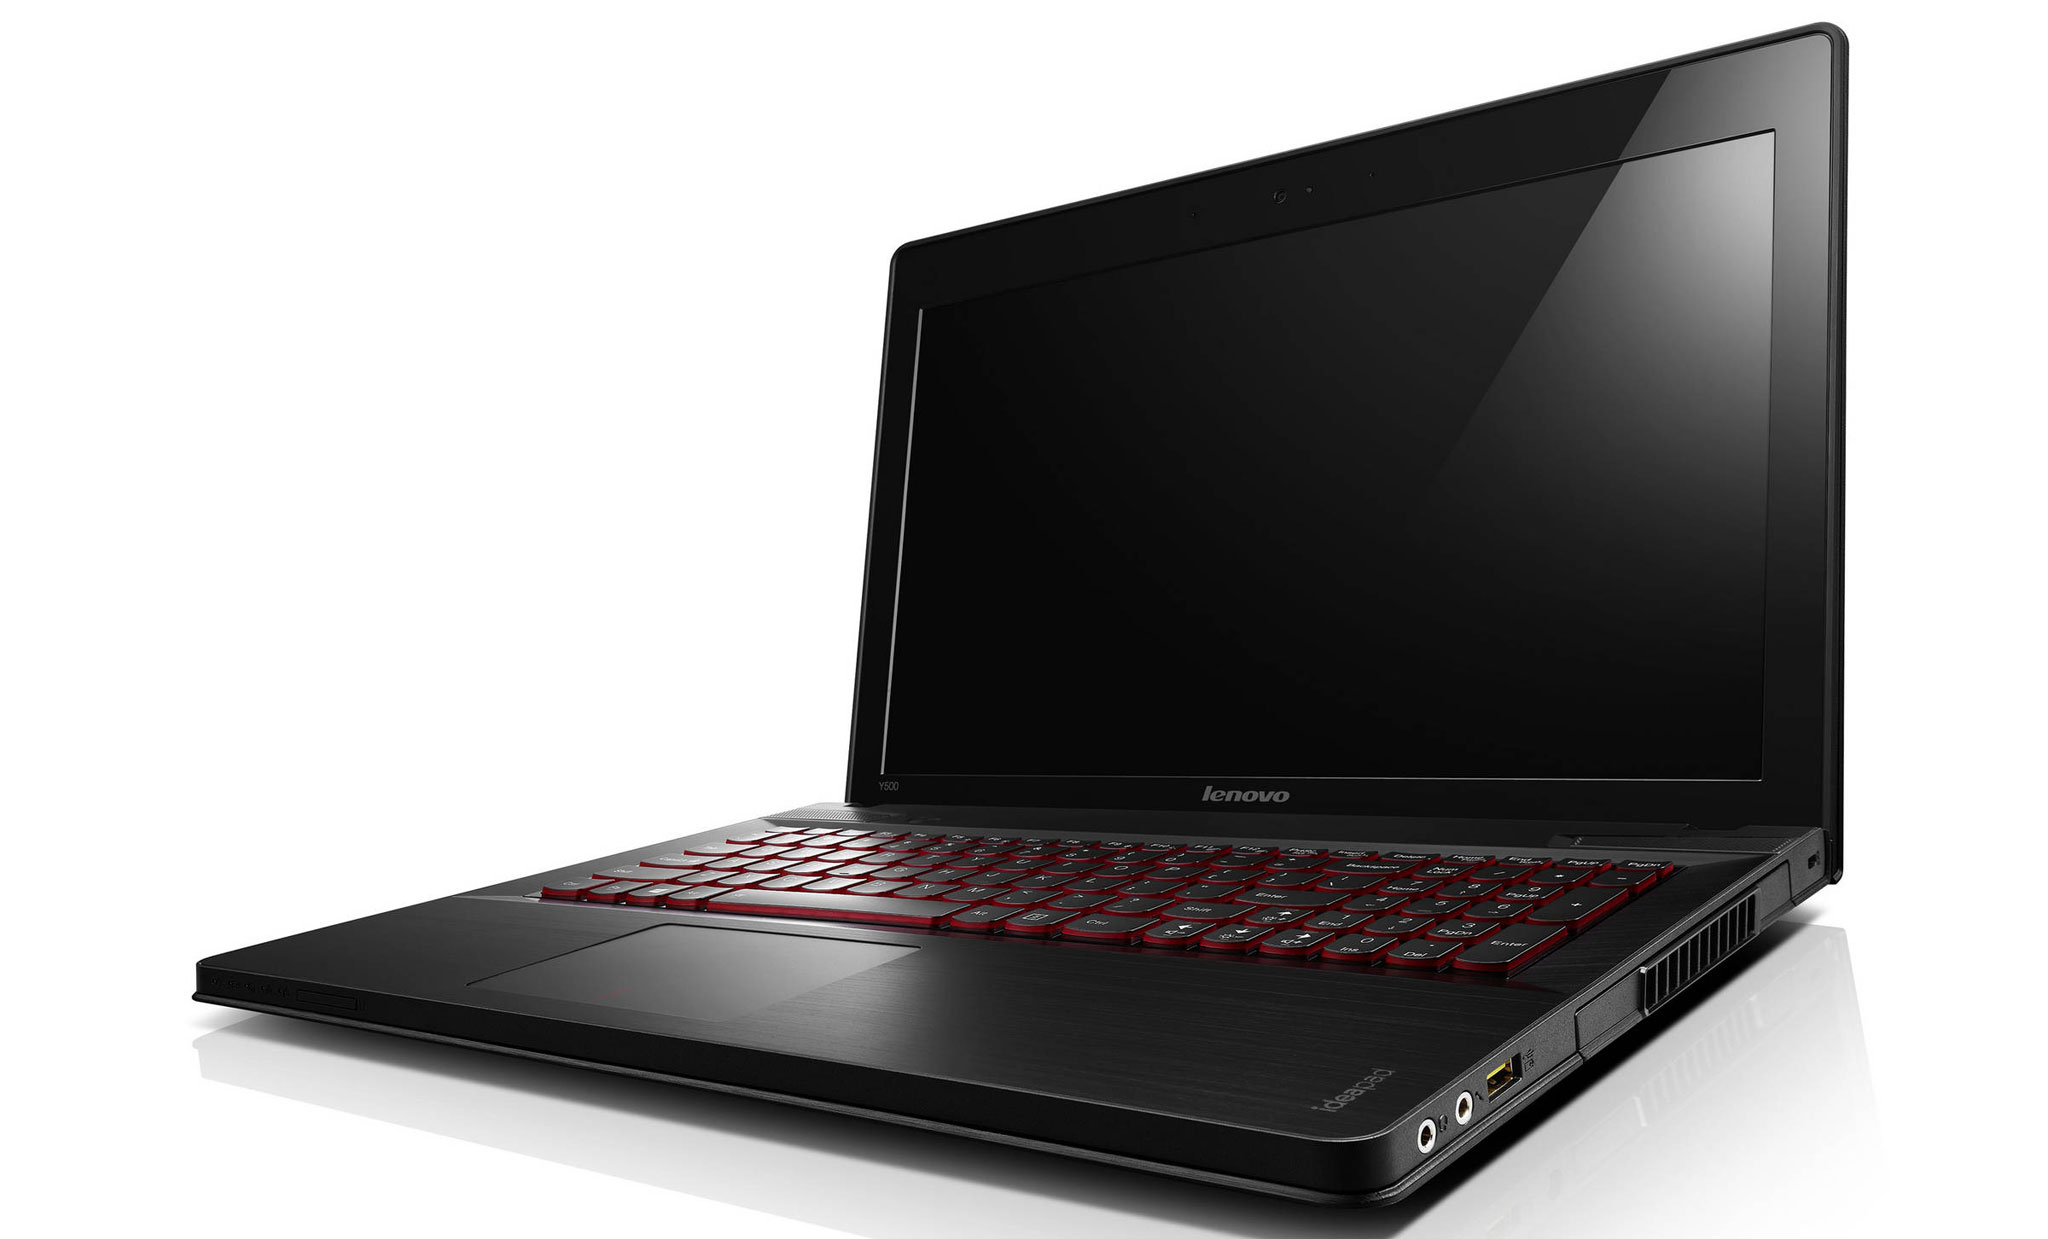 Best Gaming Notebooks April 2013